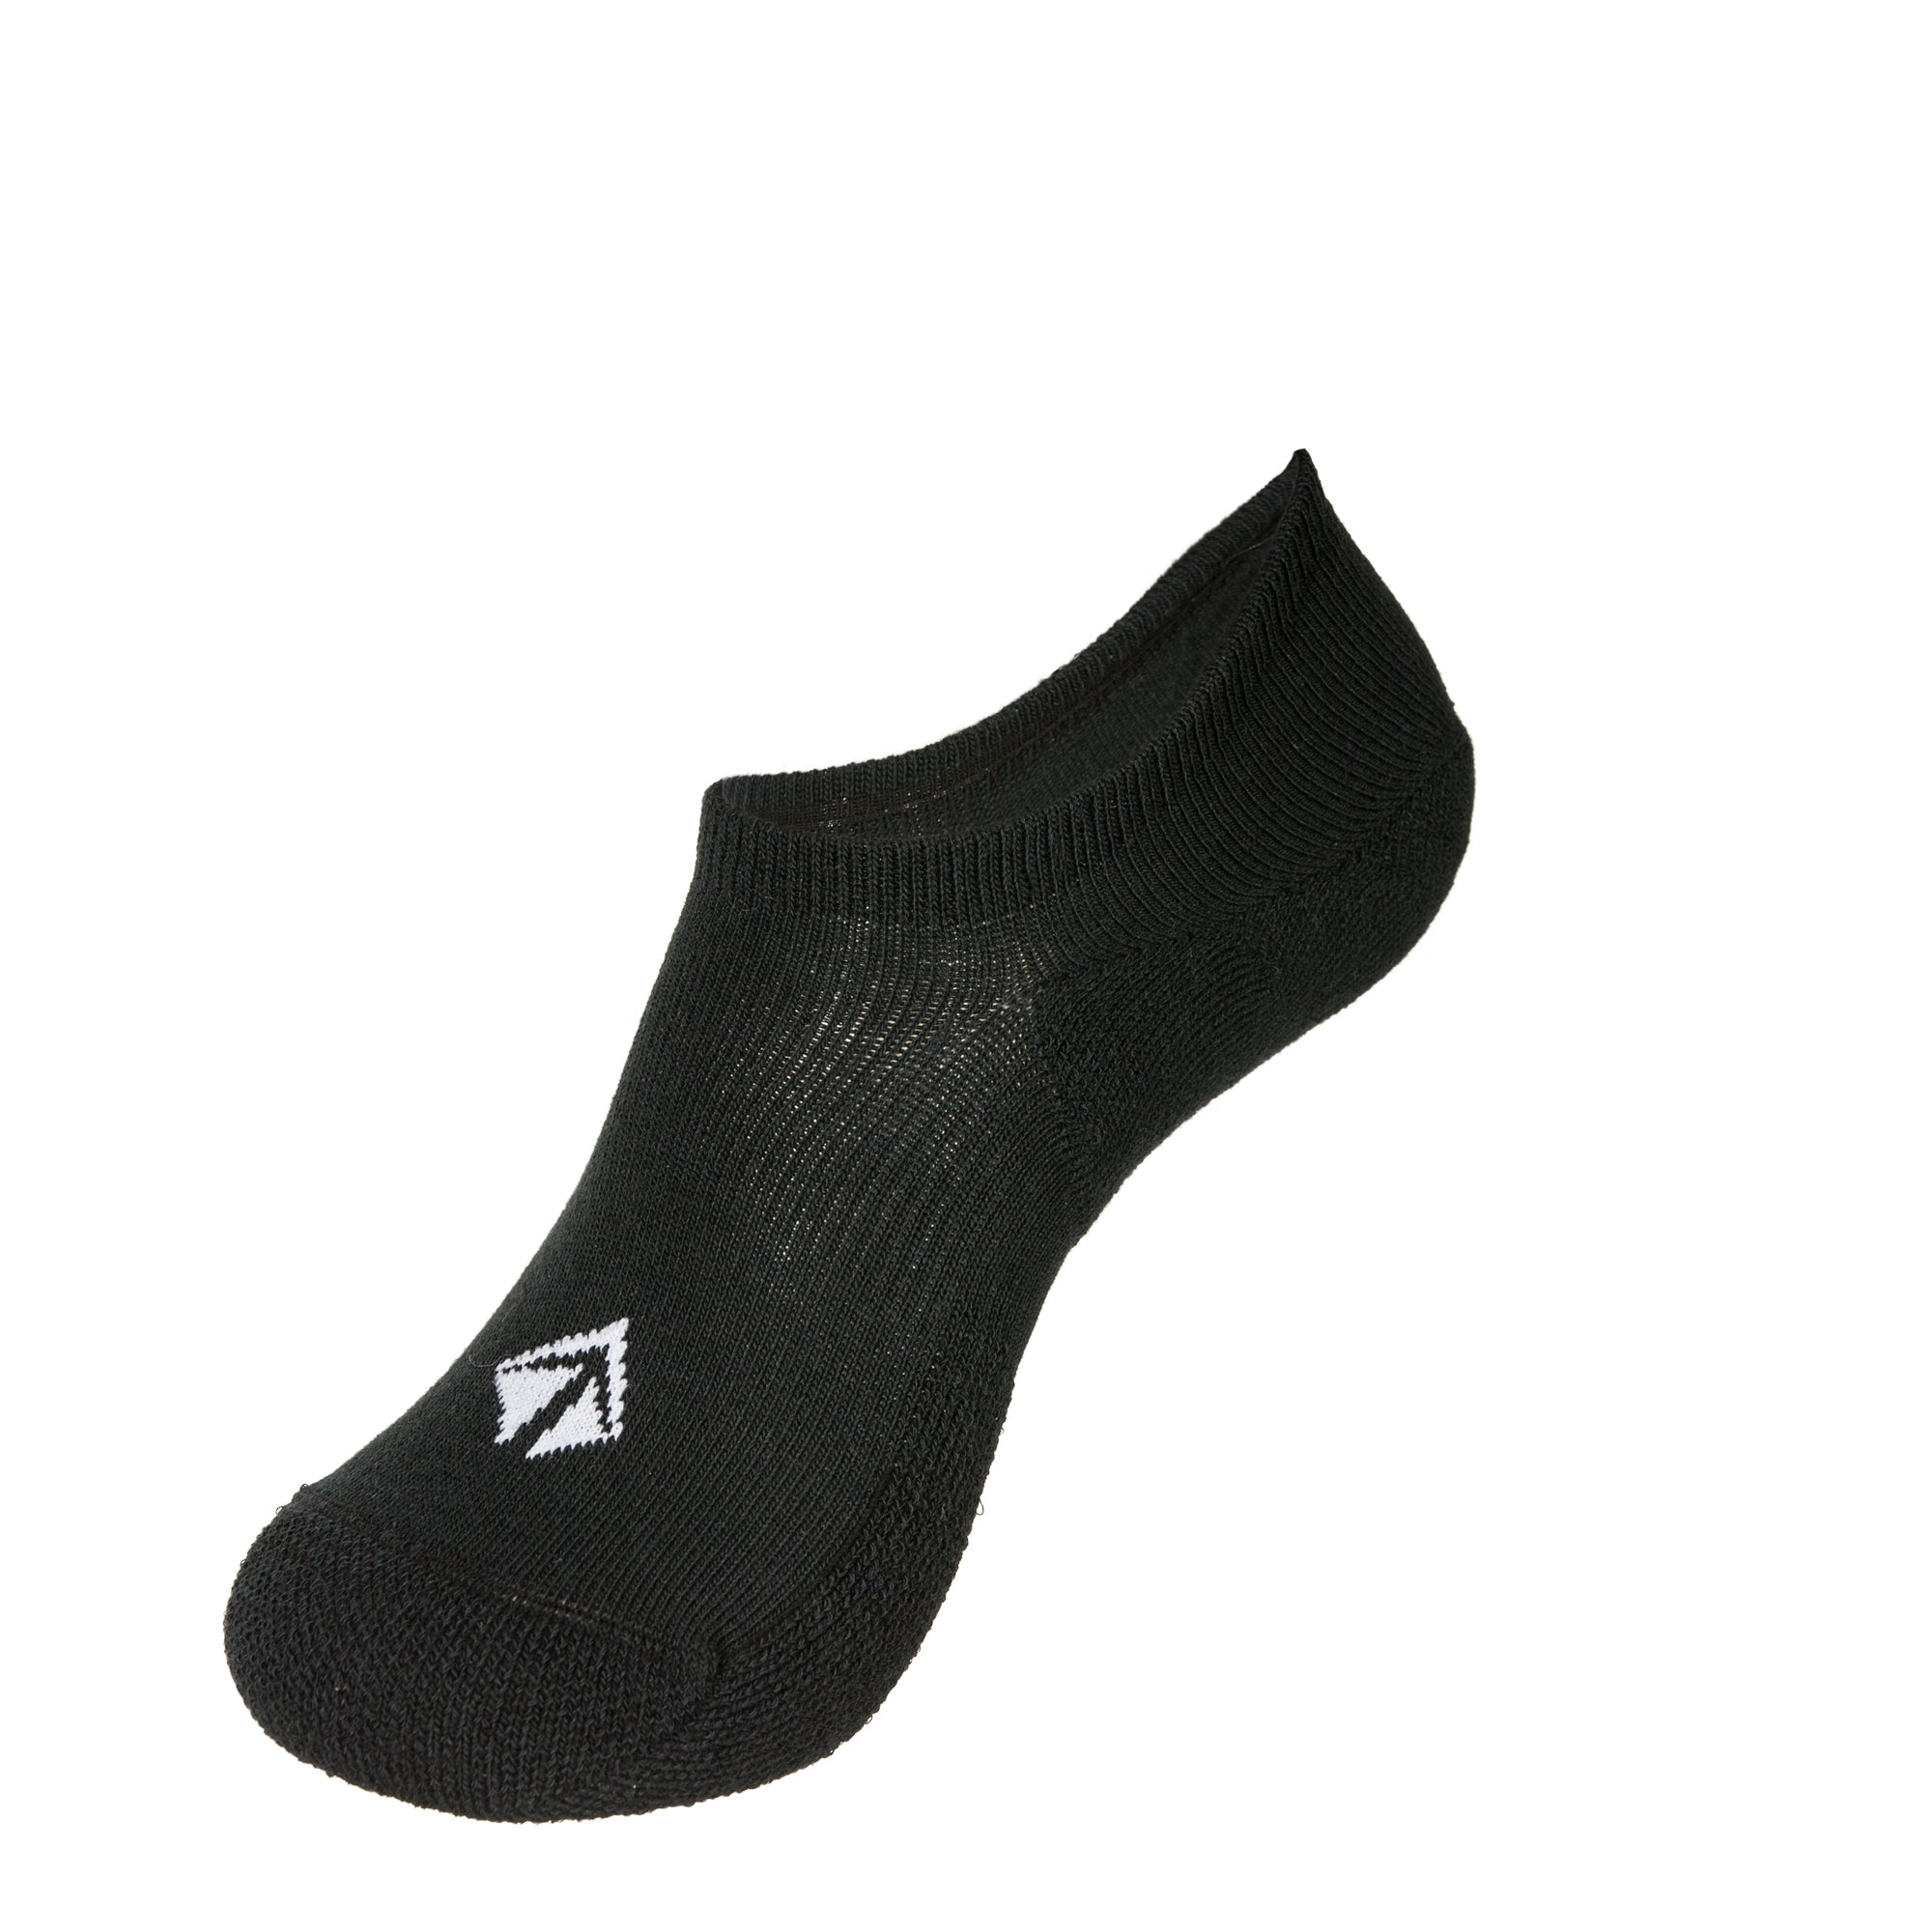 Atacama Low-cut, Lightweight, Eco-sock (Midnight)